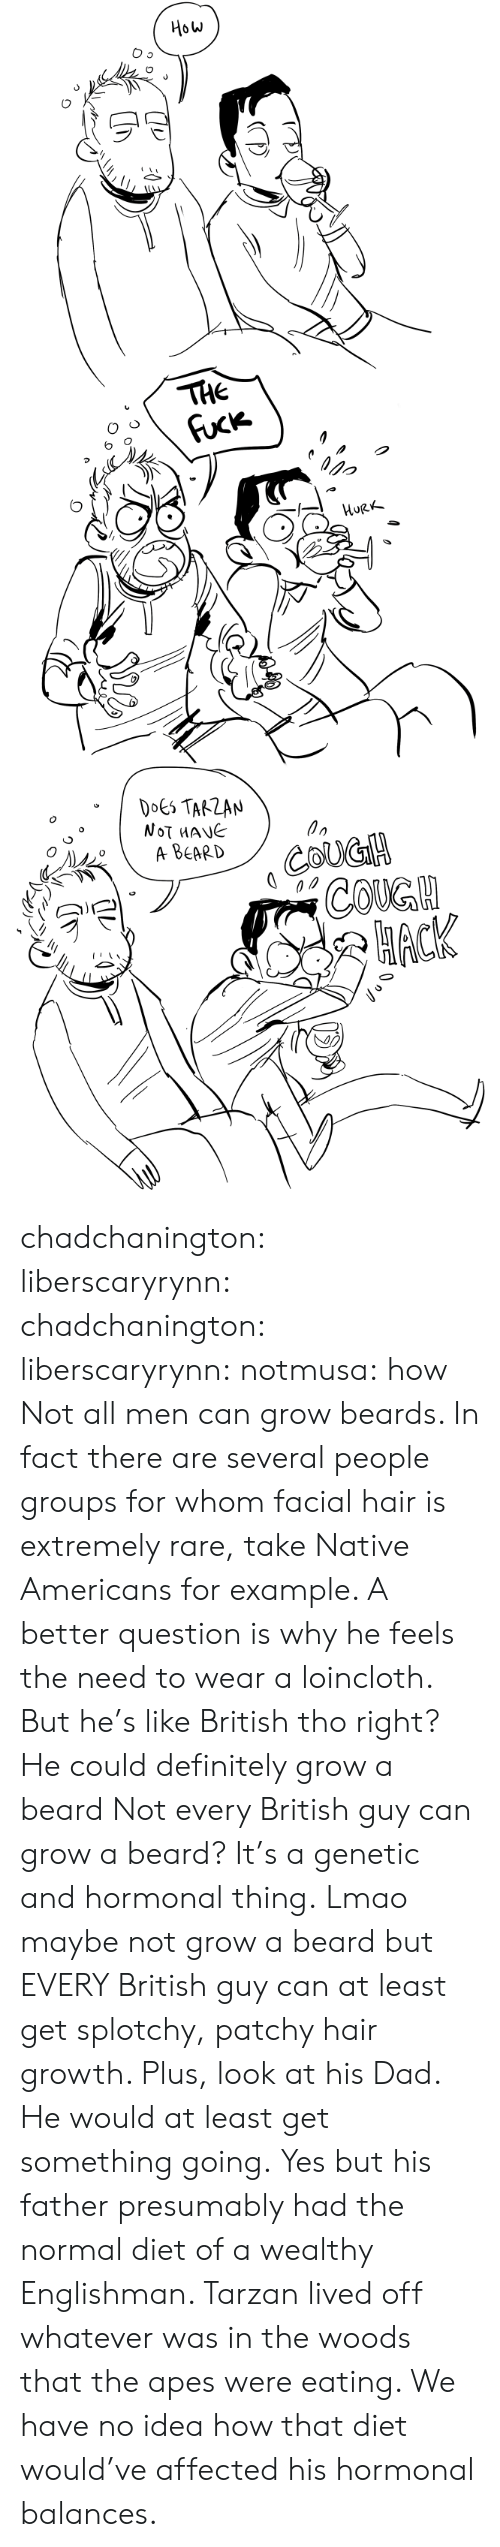 Maybe Not: How  THE  Fuck  орo  HURK  DOES TARZAN  NOT MANE  A ВЕARD  COUGH  СOKGH  НАСК chadchanington:  liberscaryrynn:  chadchanington:  liberscaryrynn:  notmusa:  how  Not all men can grow beards. In fact there are several people groups for whom facial hair is extremely rare, take Native Americans for example. A better question is why he feels the need to wear a loincloth.  But he's like British tho right? He could definitely grow a beard  Not every British guy can grow a beard? It's a genetic and hormonal thing.  Lmao maybe not grow a beard but EVERY British guy can at least get splotchy, patchy hair growth. Plus, look at his Dad. He would at least get something going.  Yes but his father presumably had the normal diet of a wealthy Englishman. Tarzan lived off whatever was in the woods that the apes were eating. We have no idea how that diet would've affected his hormonal balances.